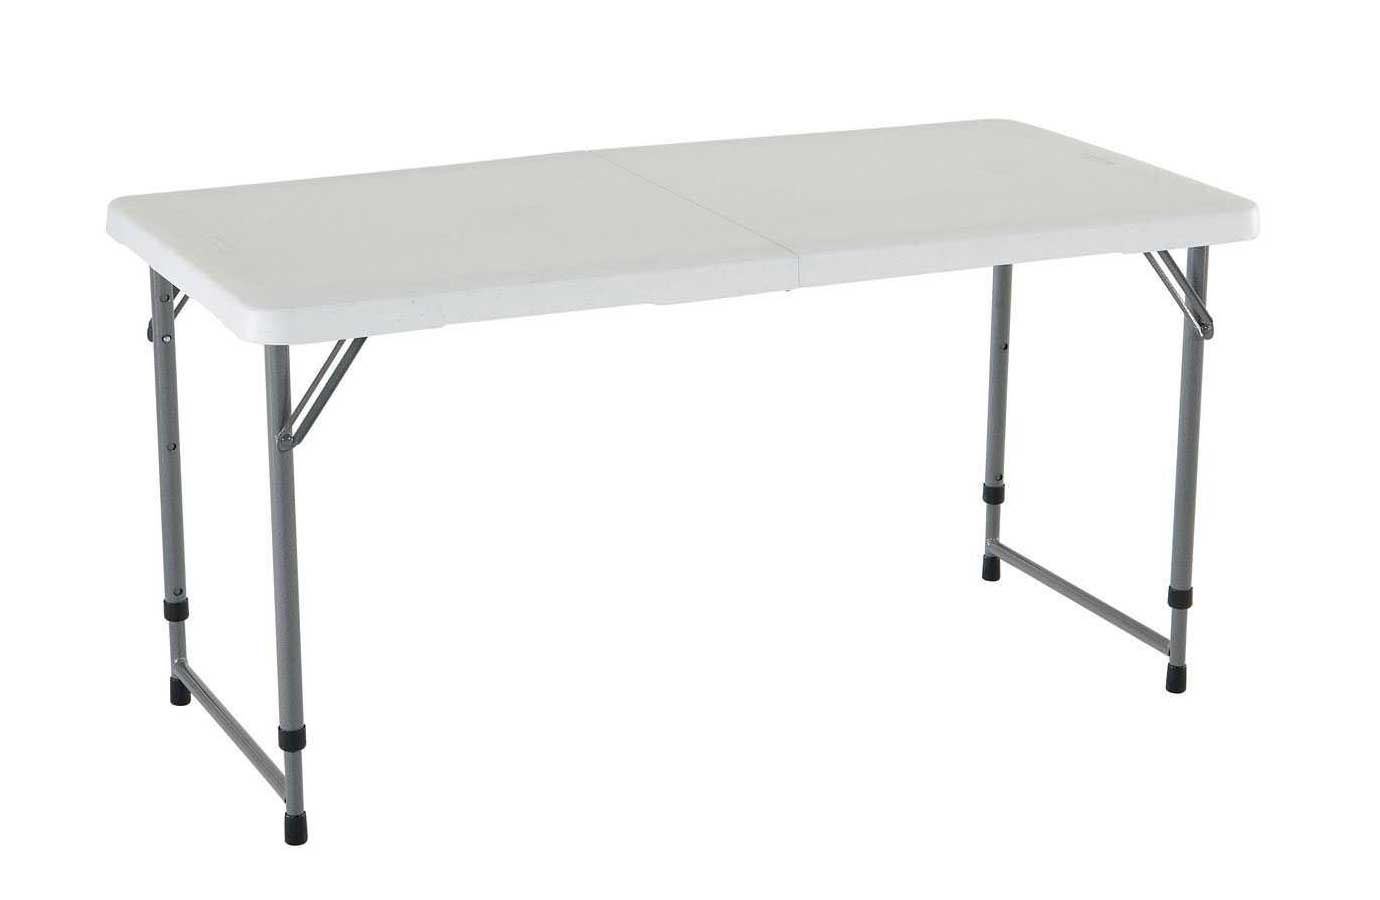 Counter Height Folding Table Legs Httpbrutabolincom - Counter height folding table legs